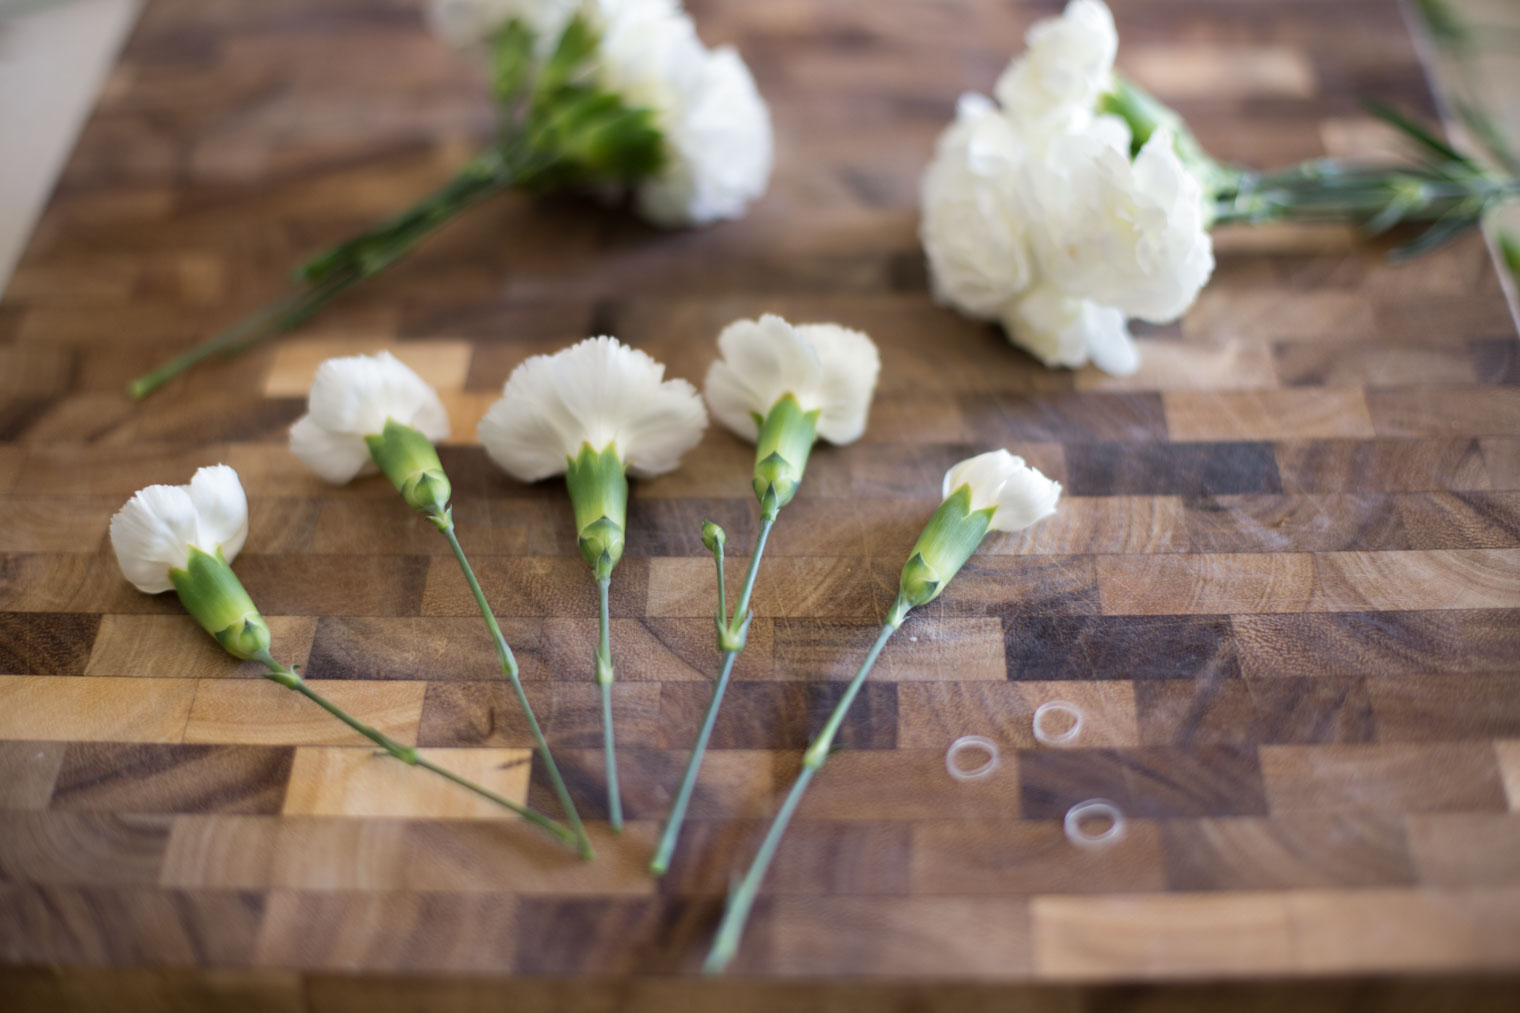 Don't save fresh flowers for special occasions! With a few simple tricks, I'll show you how to make a lovely flower arrangement for less than five dollars.